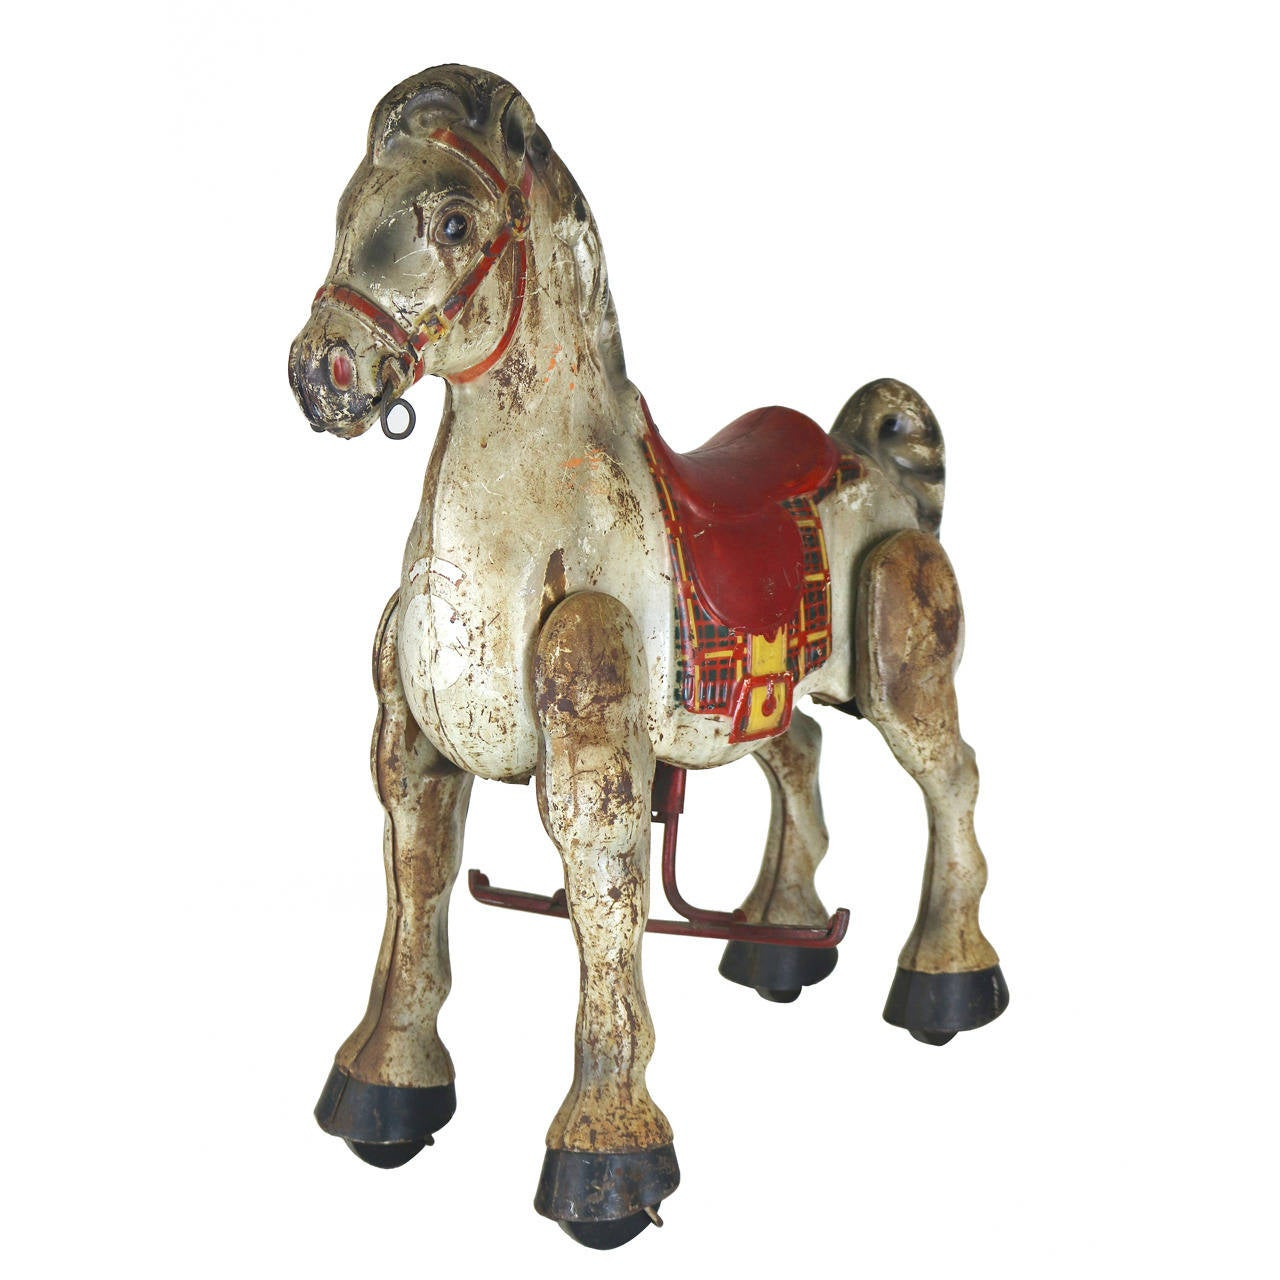 Vintage English Folk Art Child's Toy Riding Horse Great for Display